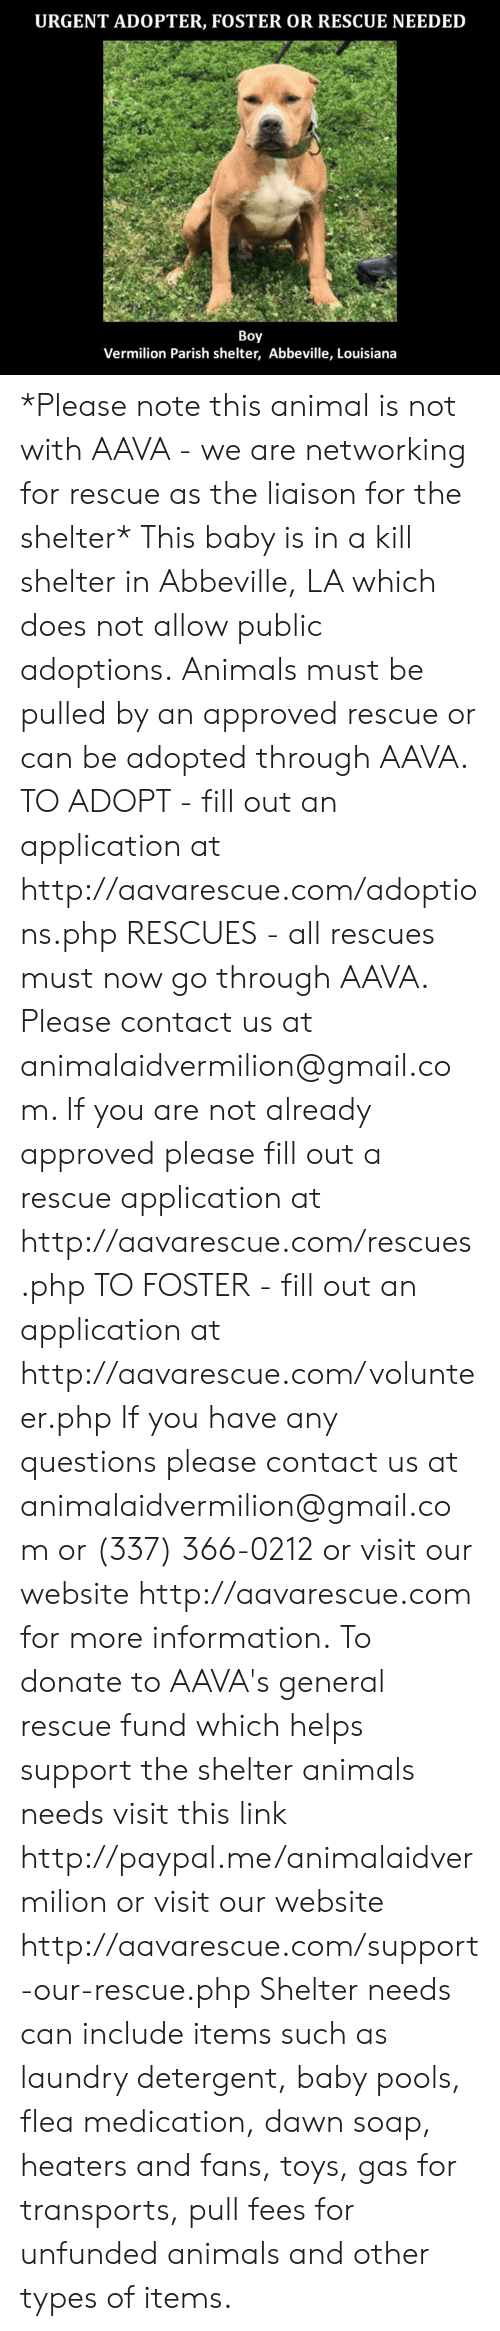 Fill Out: URGENT ADOPTER, FOSTER OR RESCUE NEEDED  Boy  Vermilion Parish shelter, Abbeville, Louisiana *Please note this animal is not with AAVA - we are networking for rescue as the liaison for the shelter* This baby is in a kill shelter in Abbeville, LA which does not allow public adoptions. Animals must be pulled by an approved rescue or can be adopted through AAVA.  TO ADOPT - fill out an application at http://aavarescue.com/adoptions.php  RESCUES - all rescues must now go through AAVA. Please contact us at animalaidvermilion@gmail.com. If you are not already approved please fill out a rescue application at http://aavarescue.com/rescues.php  TO FOSTER - fill out an application at http://aavarescue.com/volunteer.php  If you have any questions please contact us at animalaidvermilion@gmail.com or (337) 366-0212 or visit our website http://aavarescue.com for more information.  To donate to AAVA's general rescue fund which helps support the shelter animals needs visit this link http://paypal.me/animalaidvermilion or visit our website http://aavarescue.com/support-our-rescue.php Shelter needs can include items such as laundry detergent, baby pools, flea medication, dawn soap, heaters and fans, toys, gas for transports, pull fees for unfunded animals and other types of items.